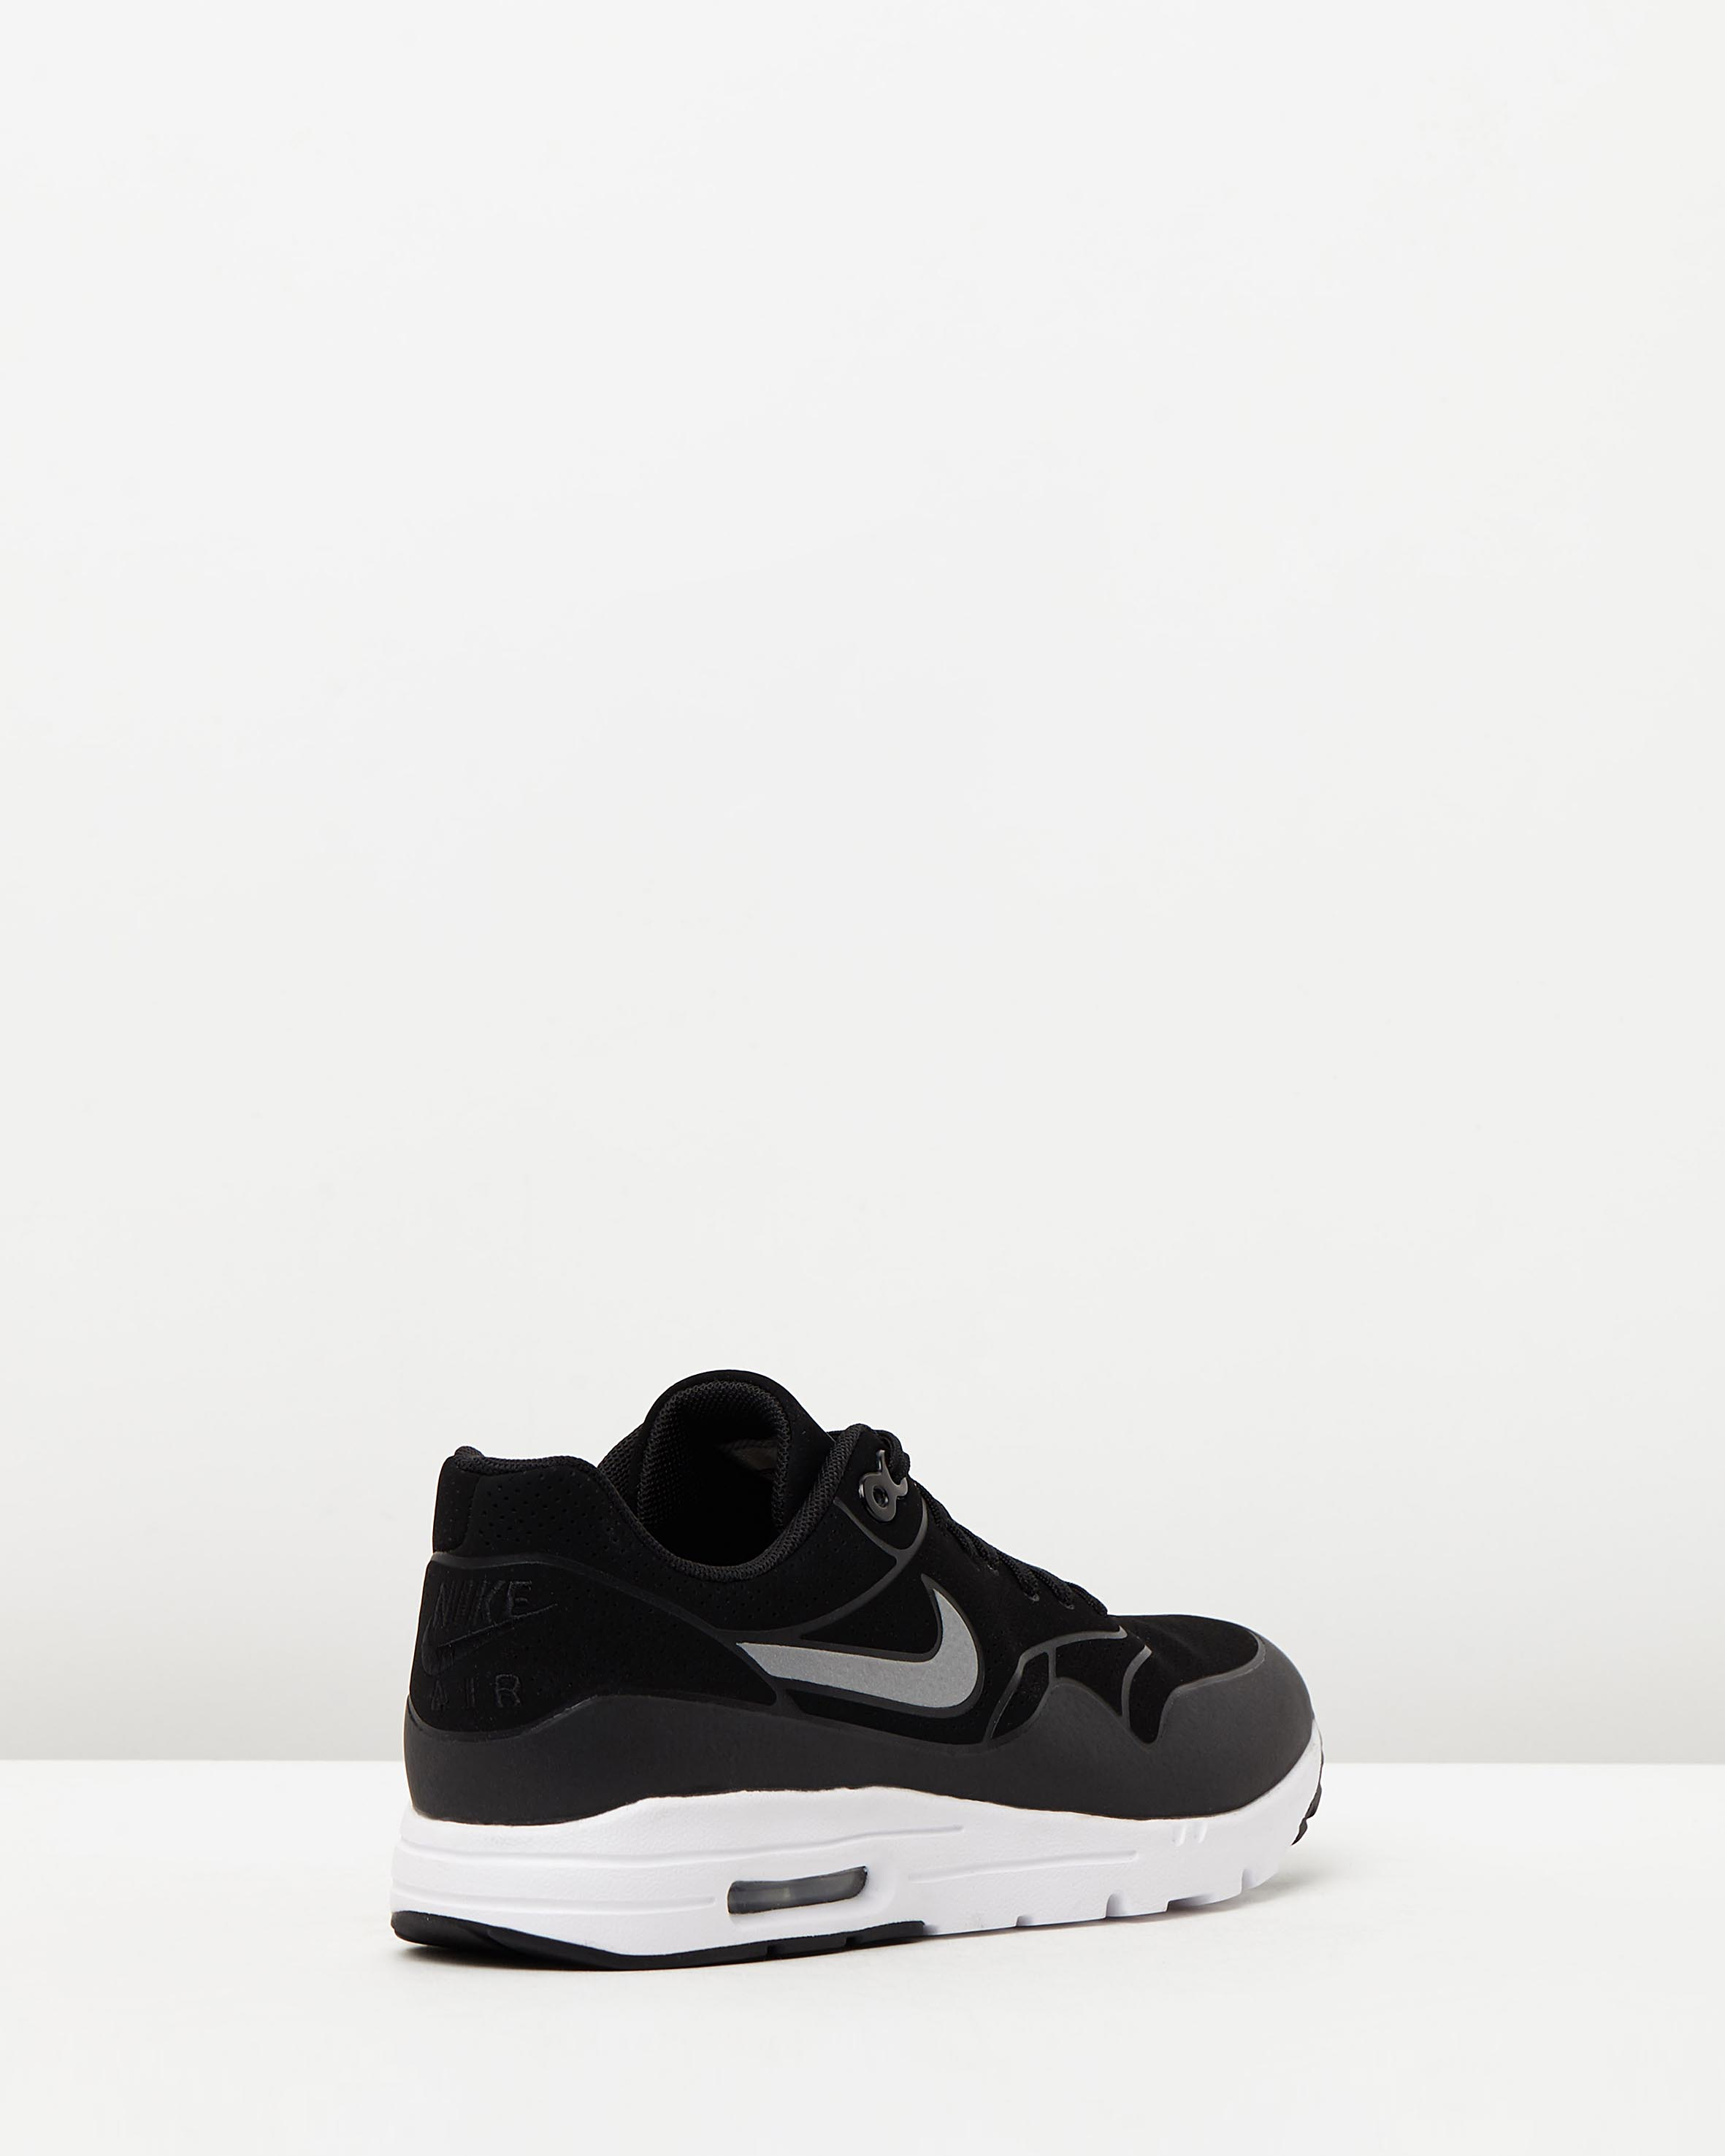 best website 3920f 1dfcc ... Womens Nike Air Max 1 Ultra Moire Black 2 ...